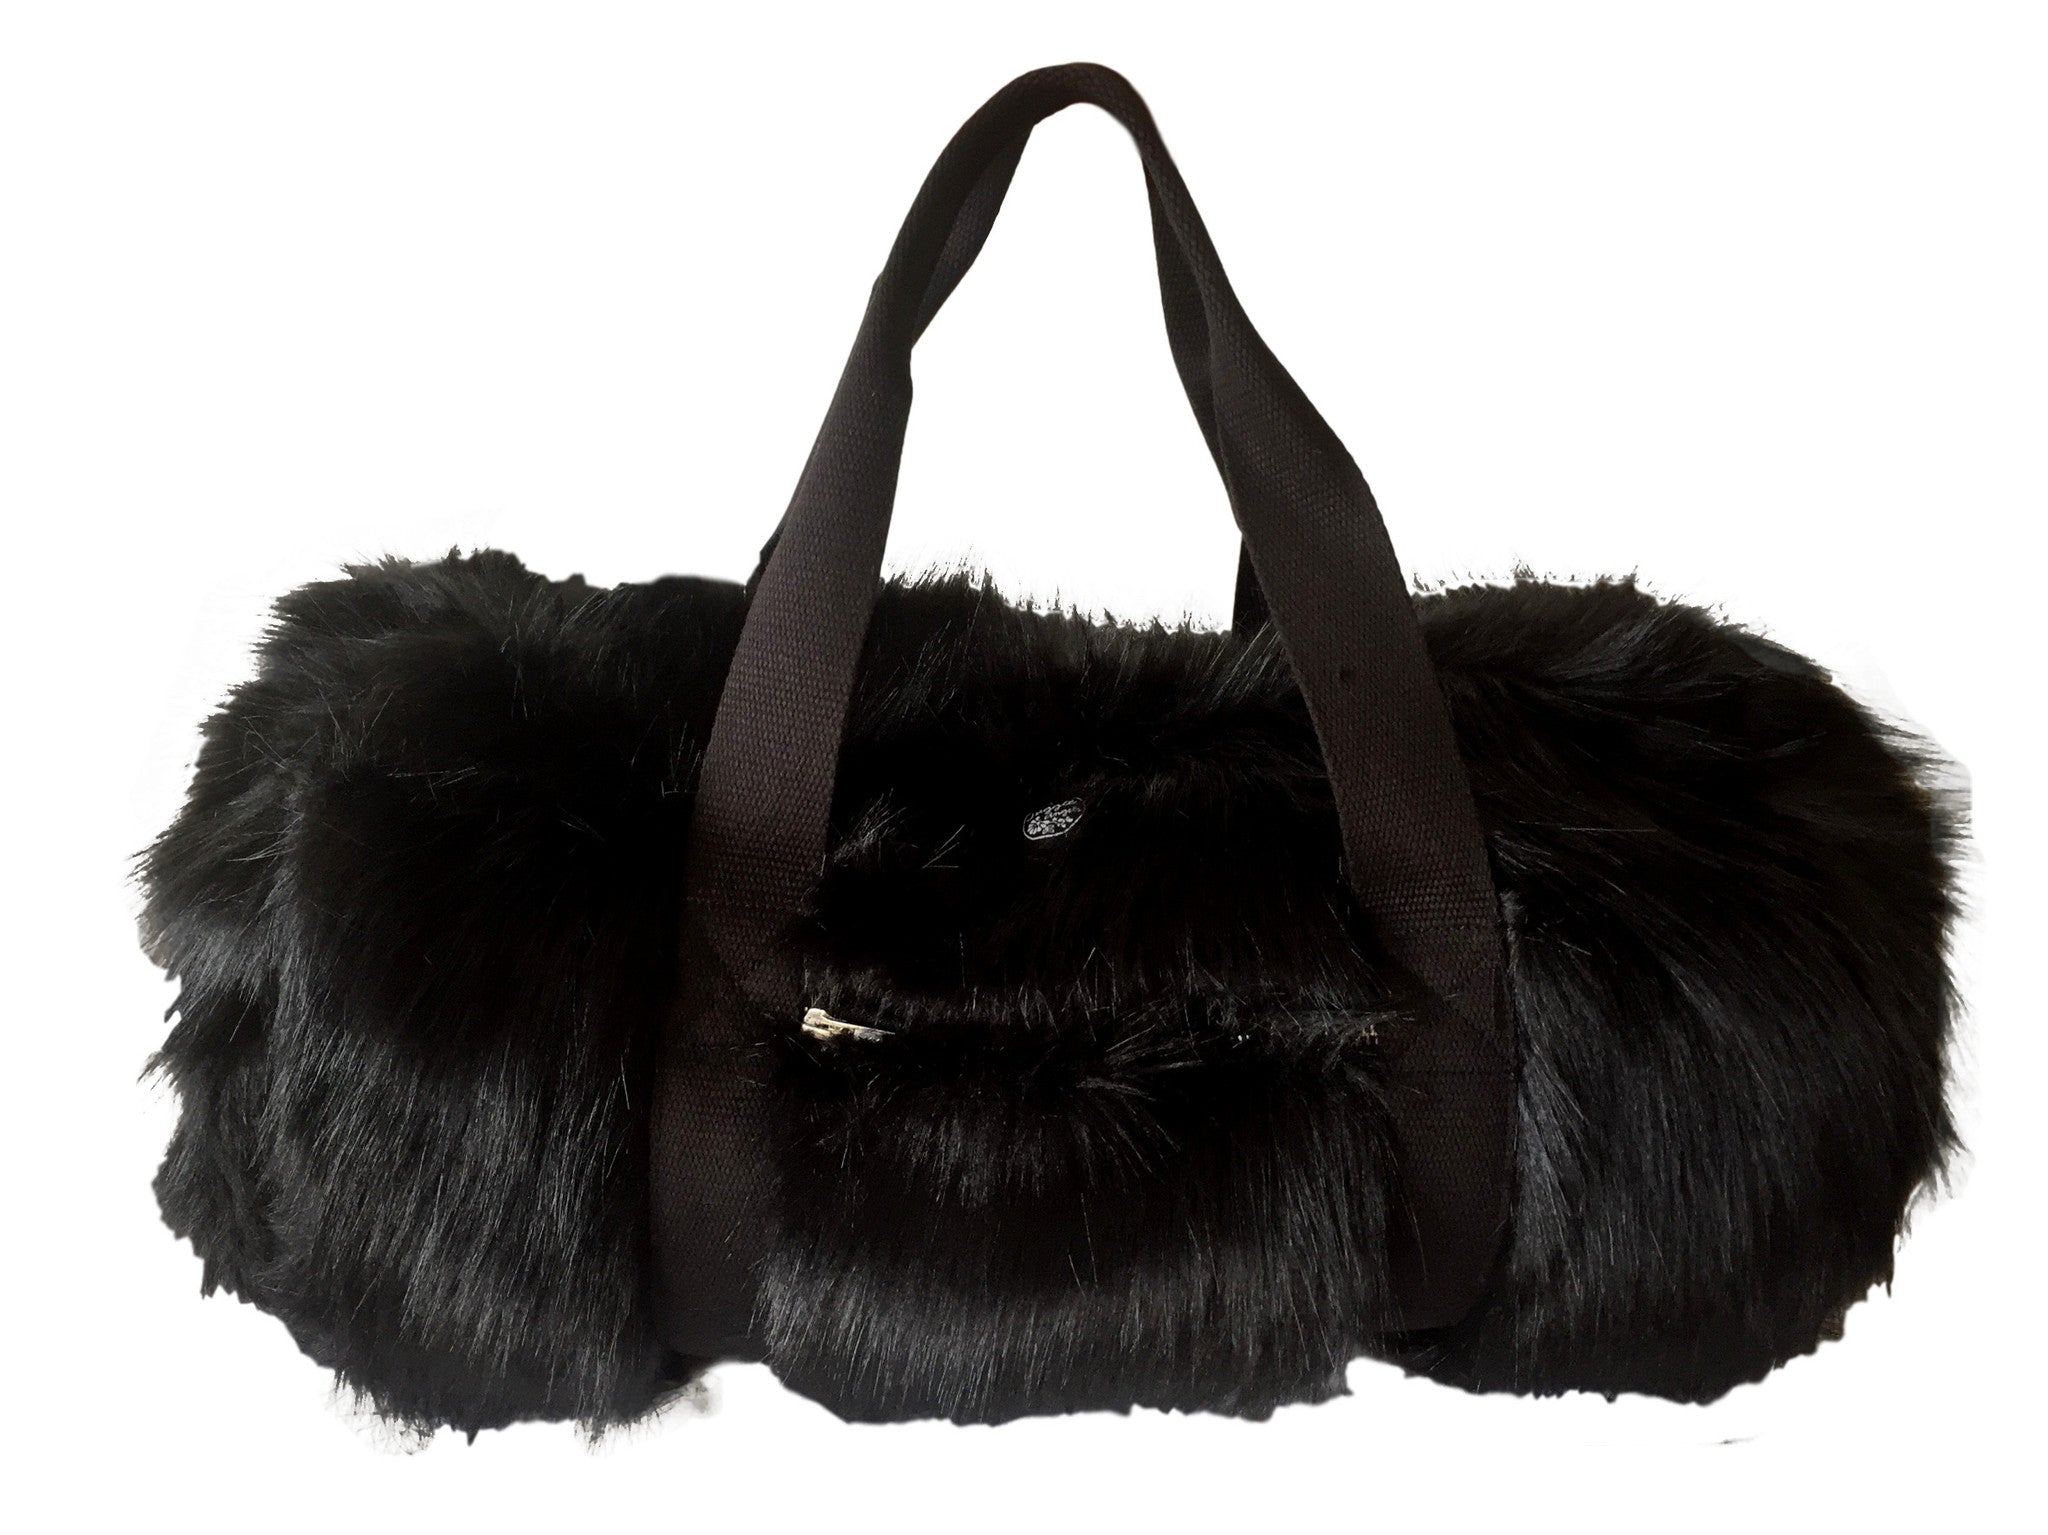 80 Black Fur Bag